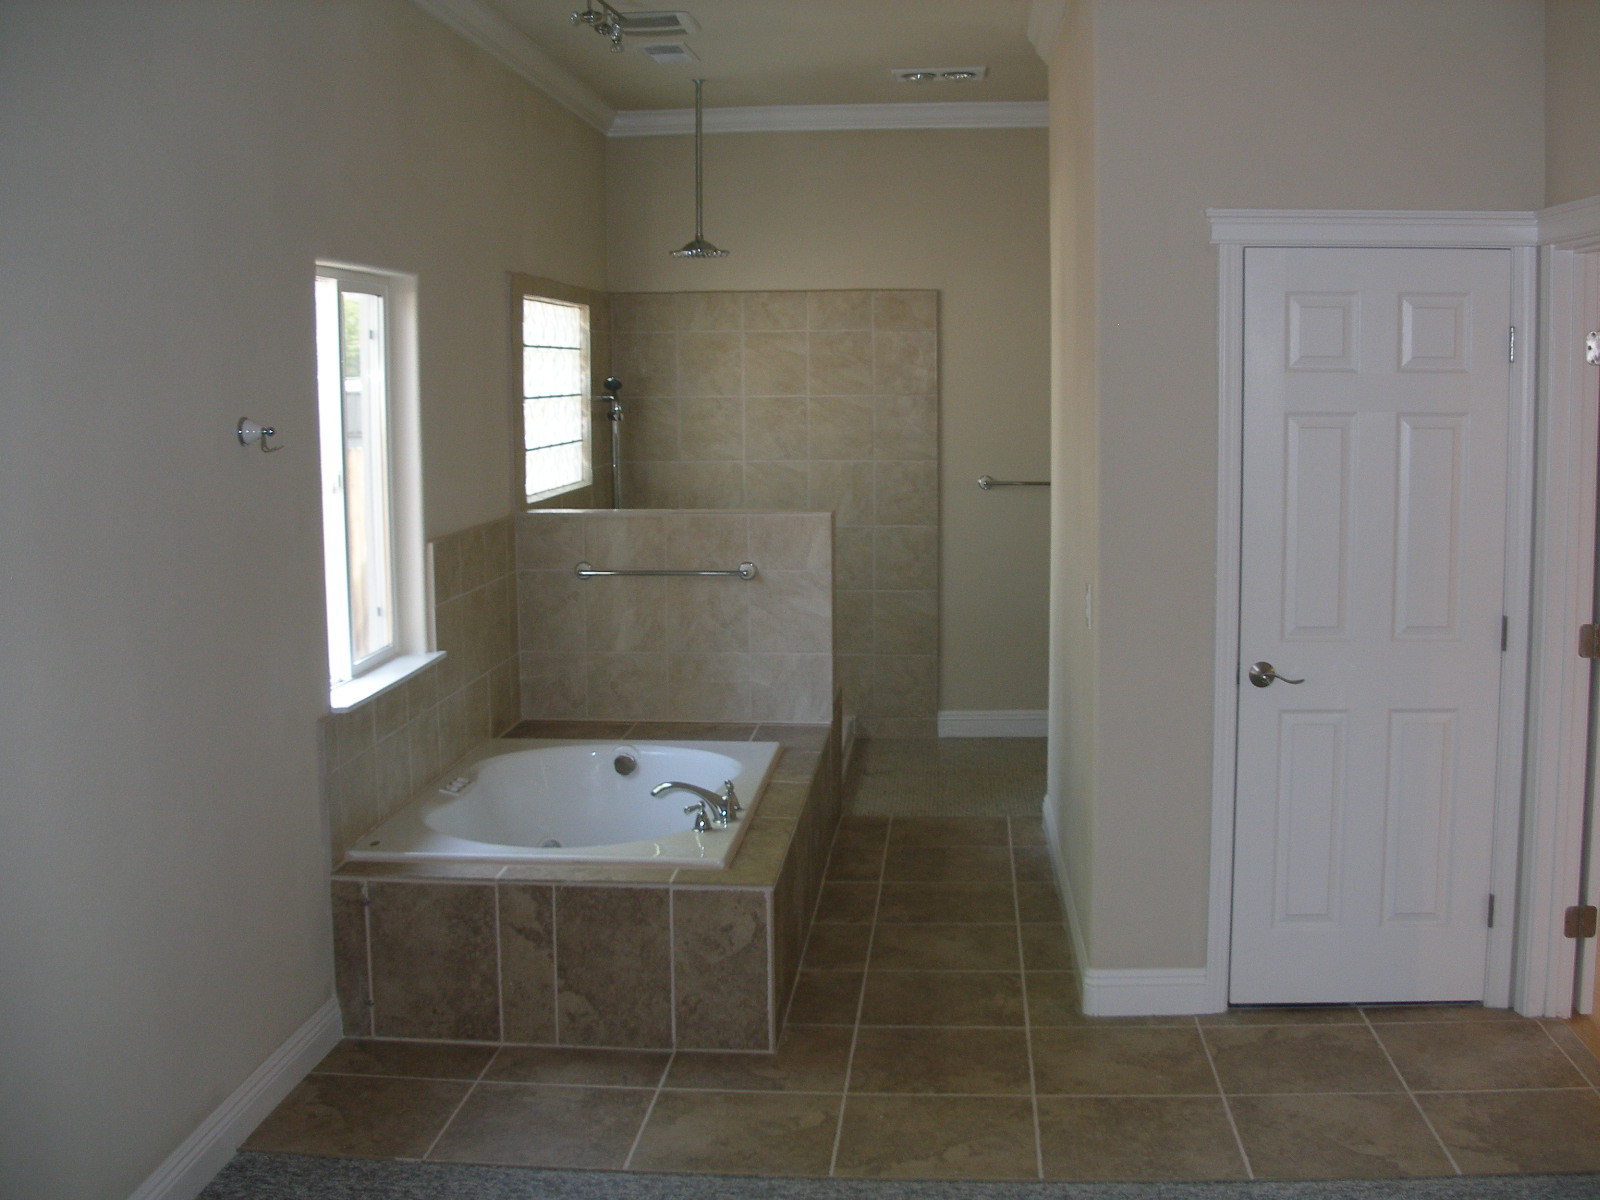 Gallery brad t jones construction for Do you need a permit to remodel a bathroom